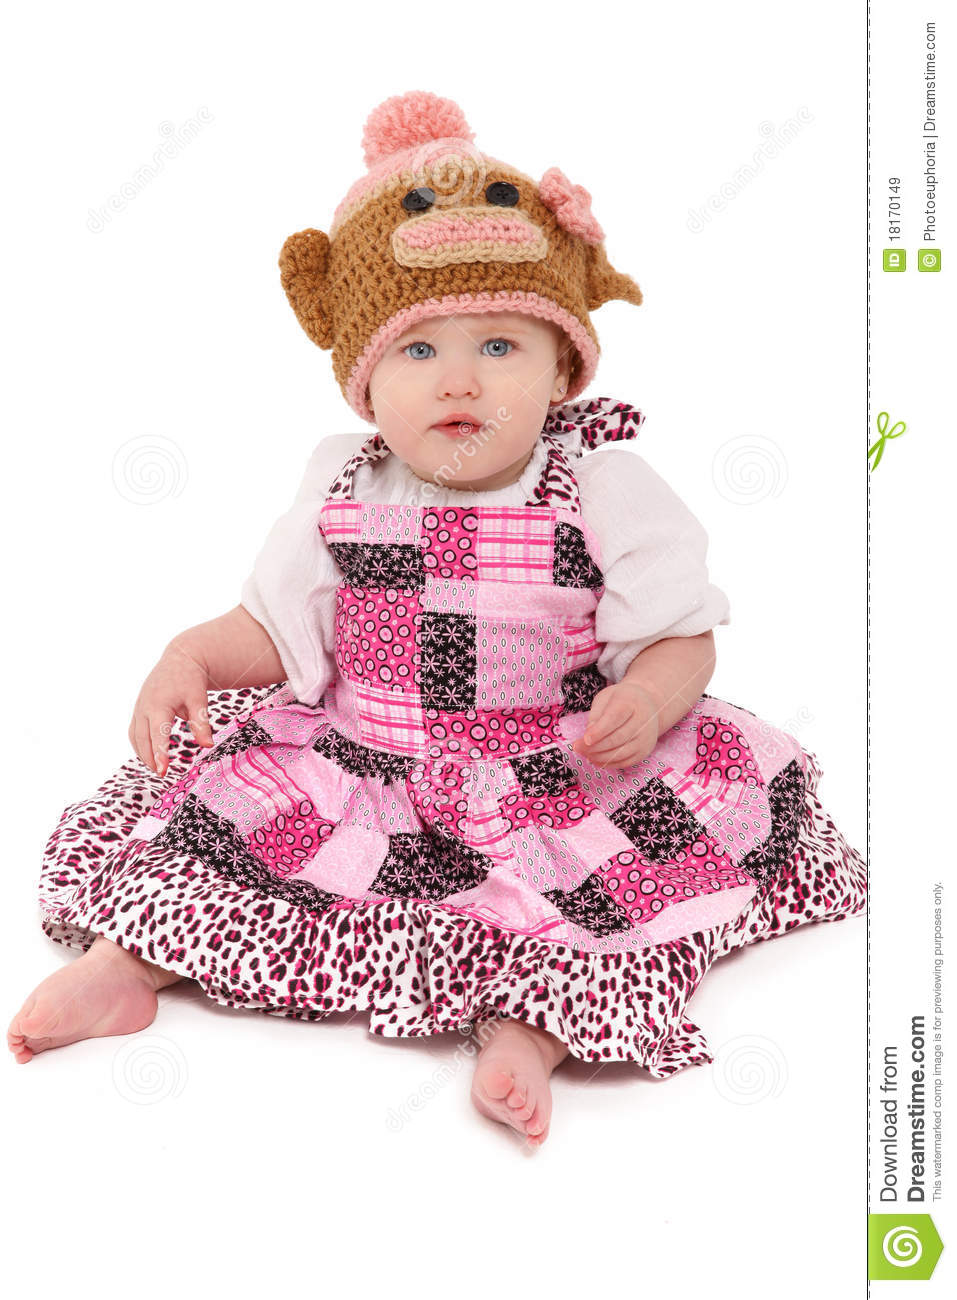 8b0305900 Baby Girl In Knitted Monkey Hat Stock Image - Image of innocent ...